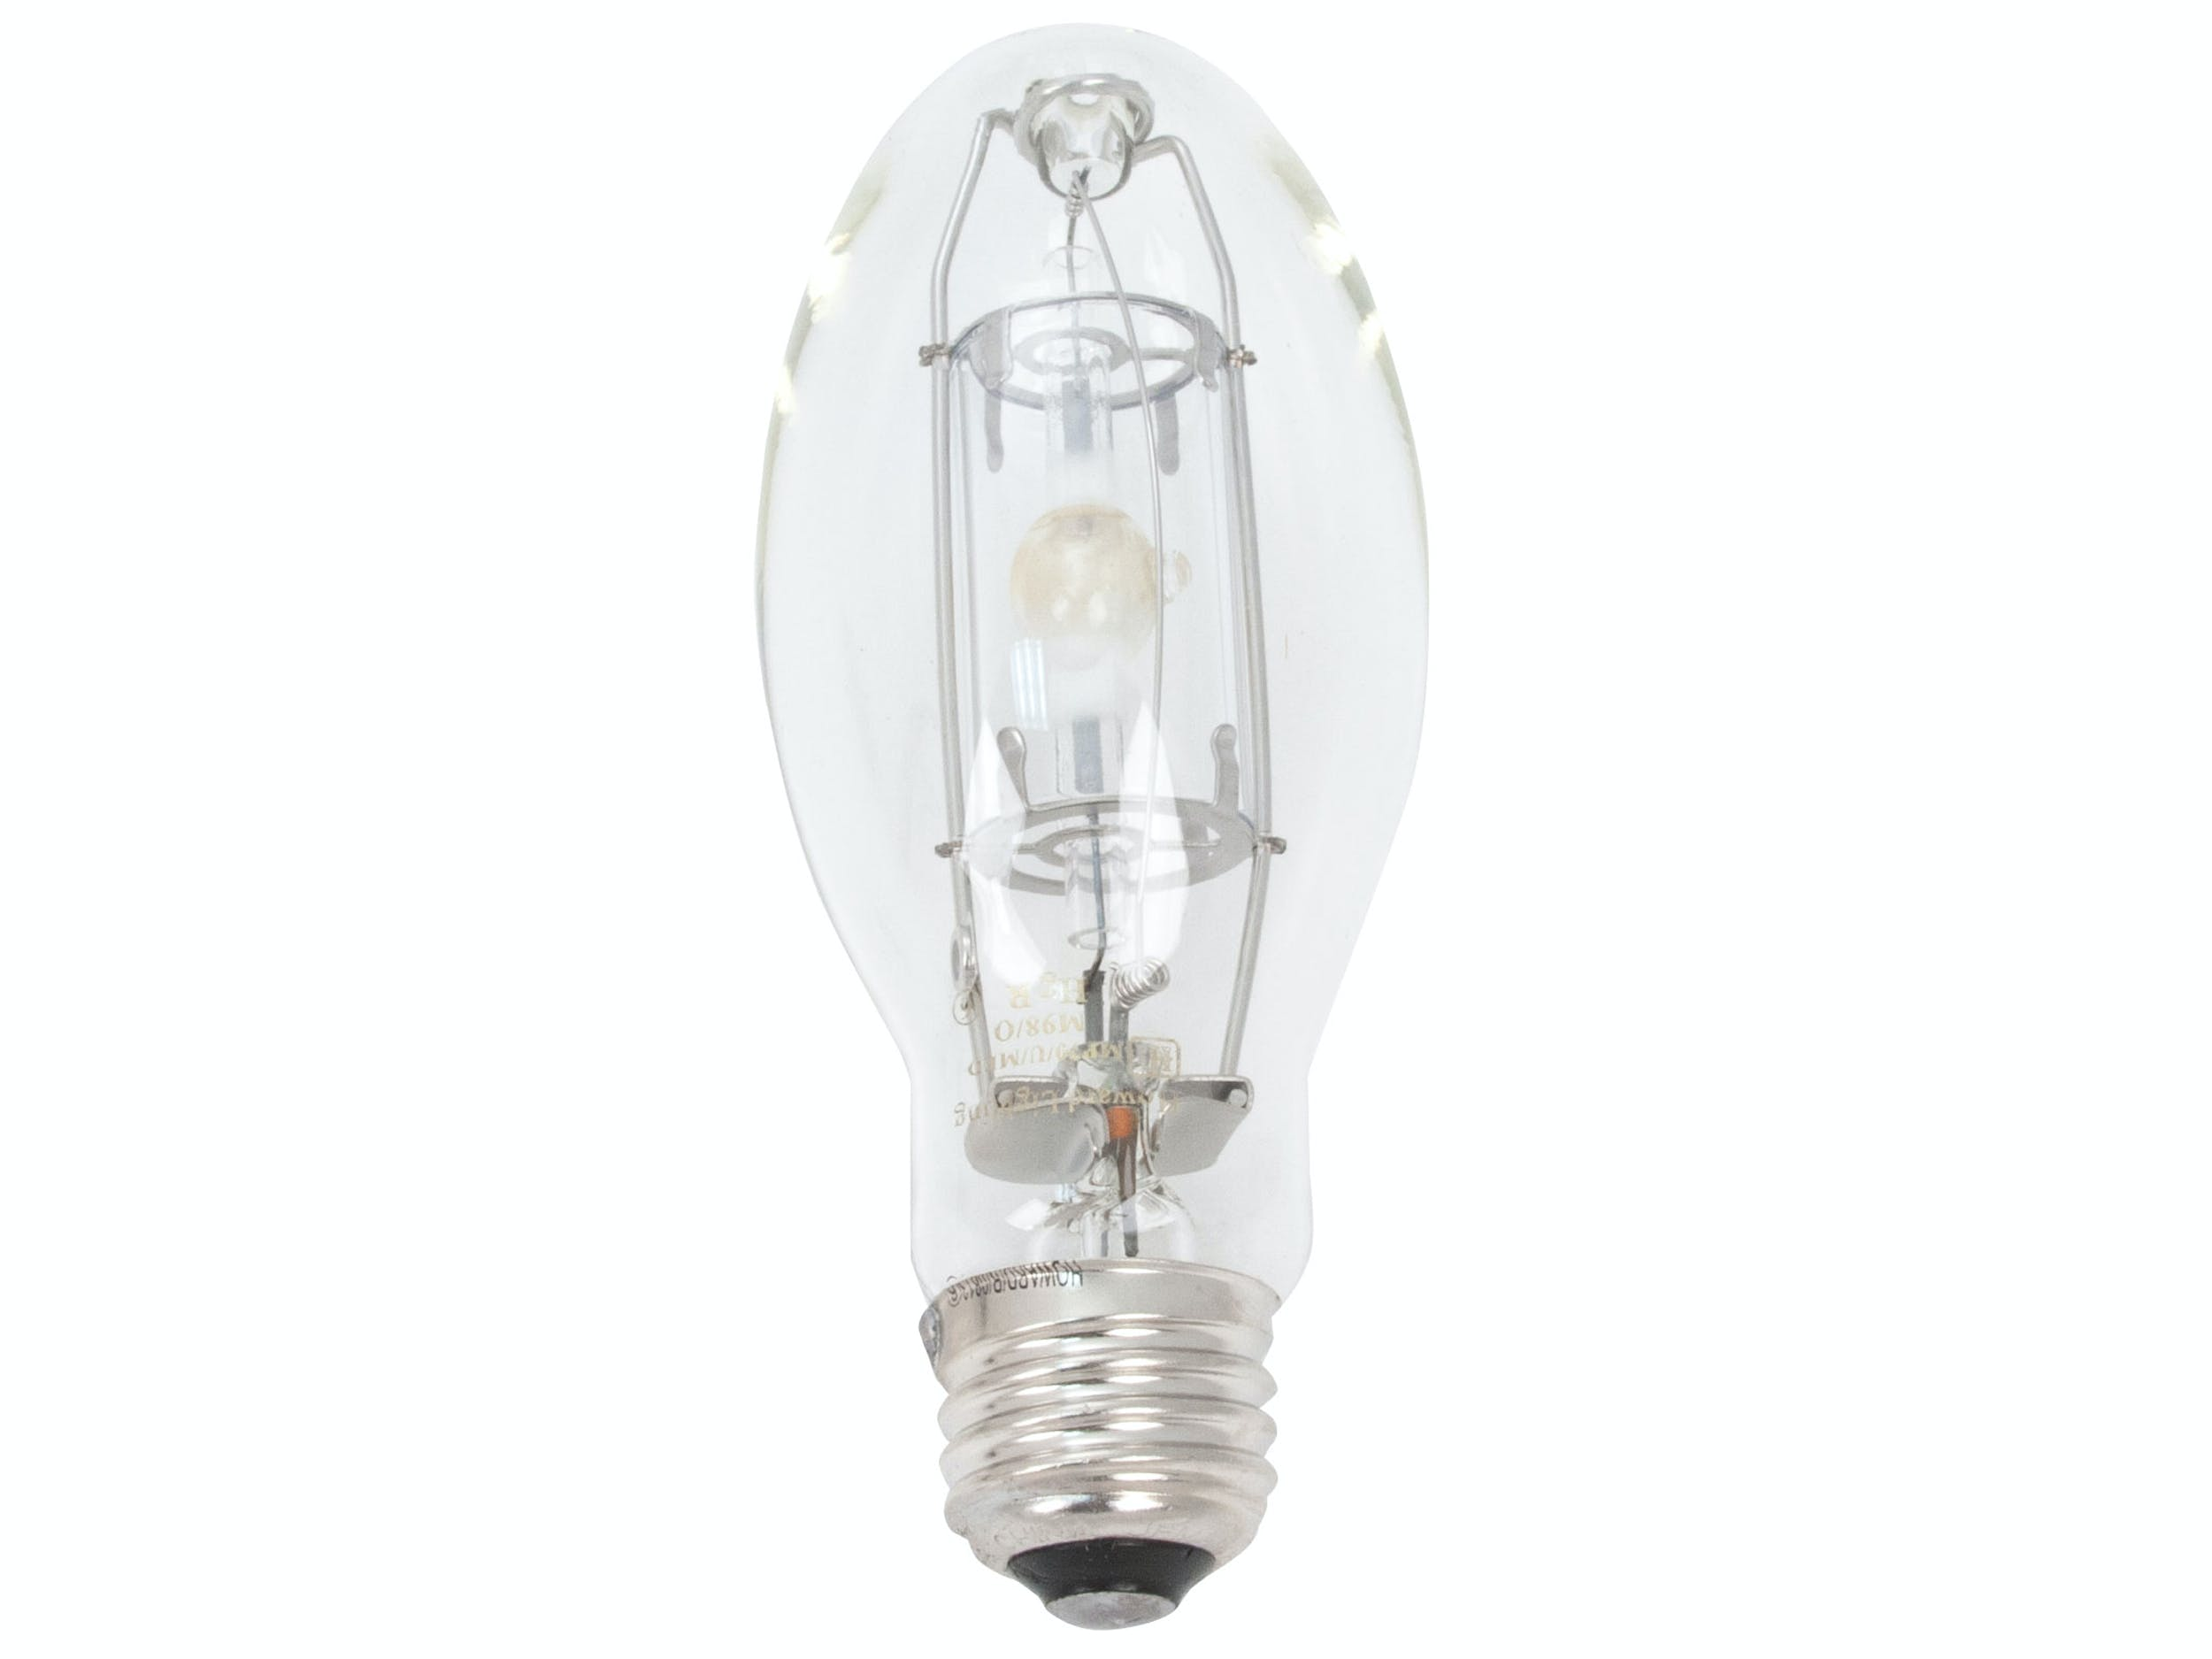 70W Clear Medium Base Protected Metal Halide ED17-P Lamp - sold by RelightDepot.com